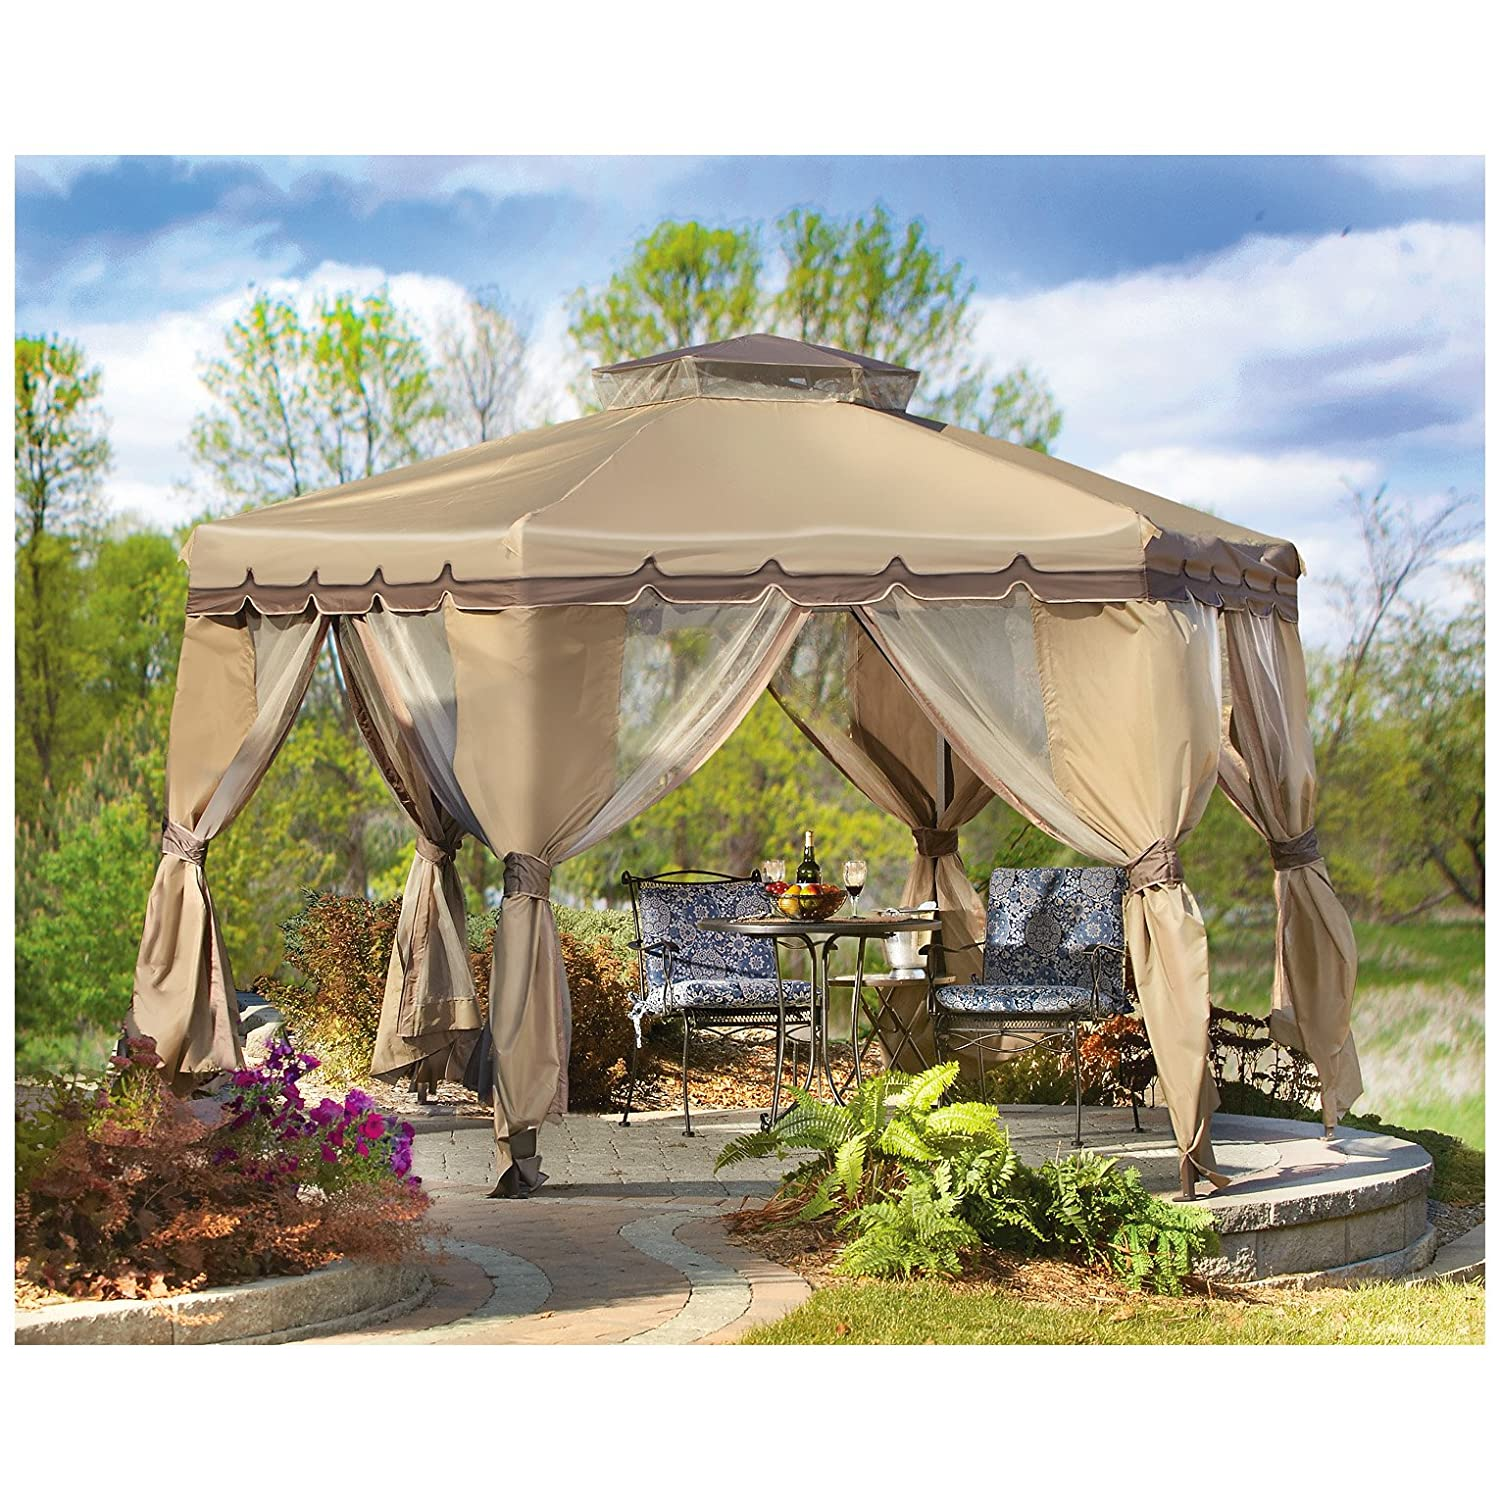 Amazon.com  CASTLECREEK Pop-Up Gazebo with Bug Netting 12u0027 x 12u0027  Garden u0026 Outdoor  sc 1 st  Amazon.com & Amazon.com : CASTLECREEK Pop-Up Gazebo with Bug Netting 12u0027 x 12 ...